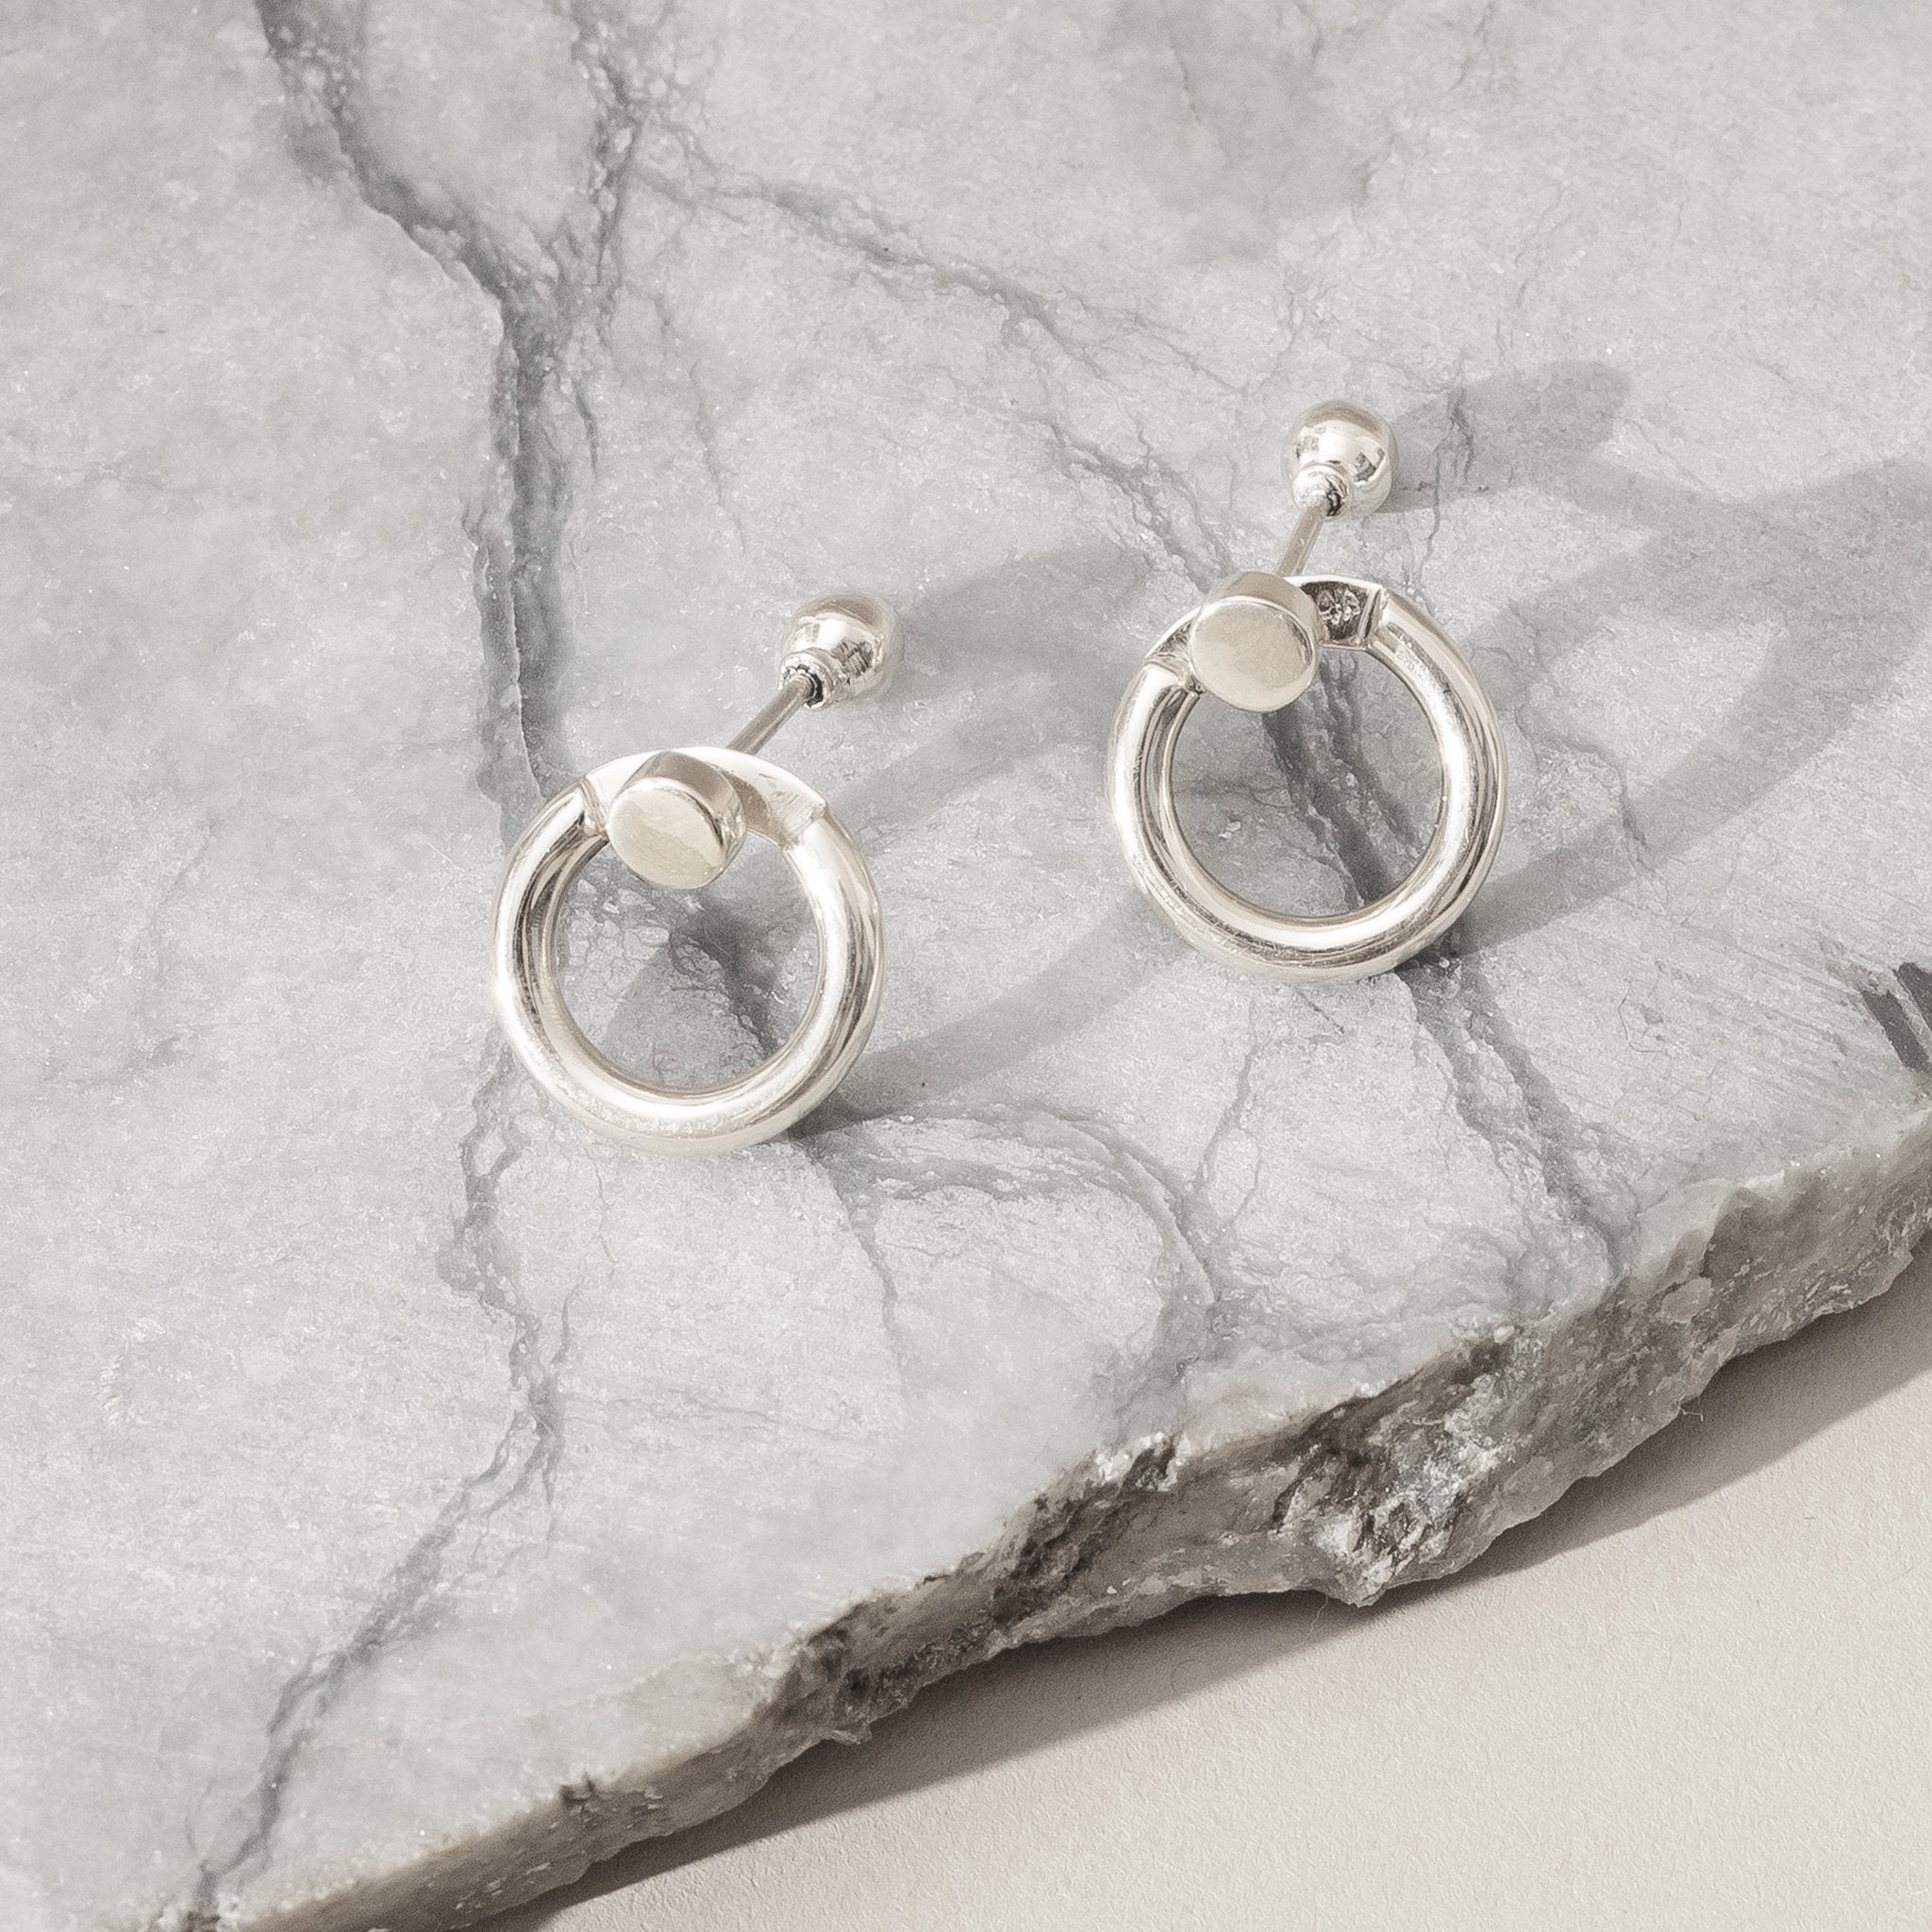 small silver hoop earrings with silver studs displayed on a jade stone